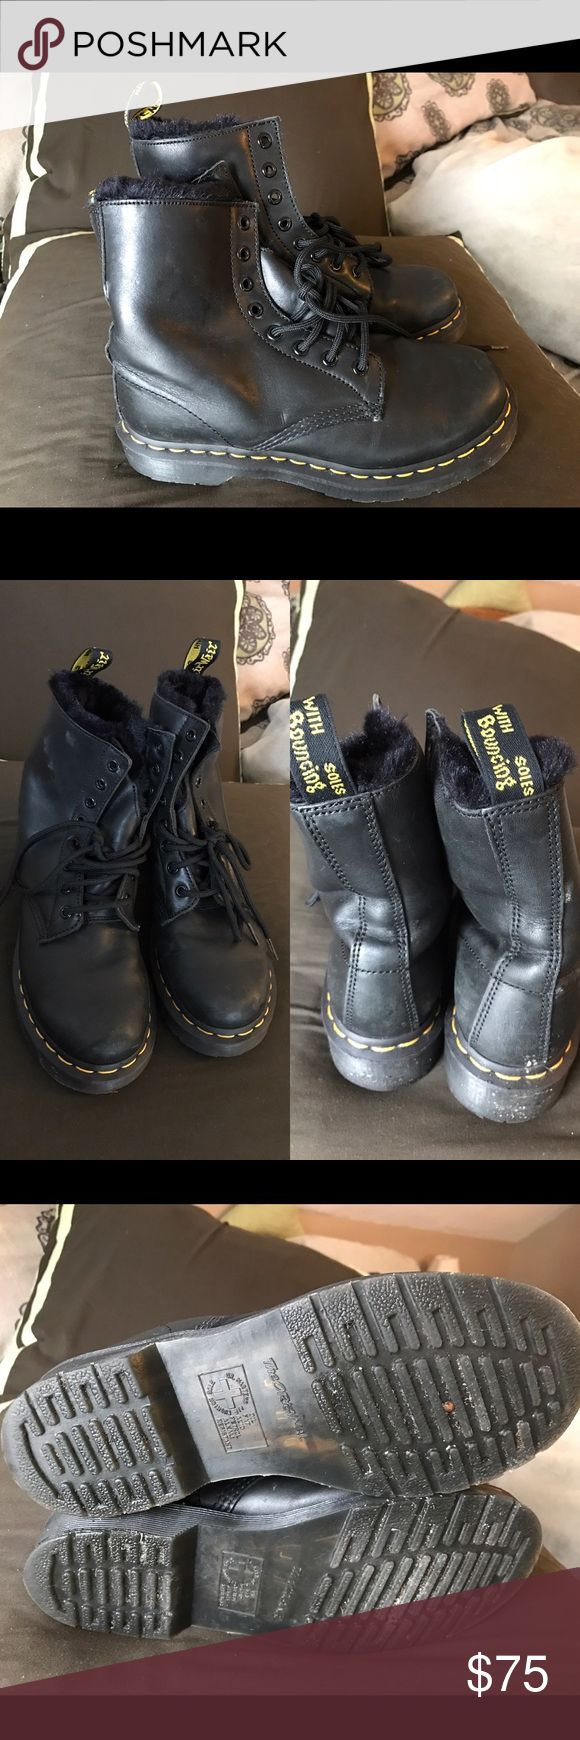 Dr. Martens Serena, really good condition!! Worn 5 times, some mild scuffs, EXTRA-TOUGH, DURABLE SOLE—& LINED WITH SOFT, RICH ARTIFICIAL BLACK FUR. ORIGINAL DOC DNA IS STILL INTACT, THOUGH— LIKE YELLOW STITCHING, GROOVED SIDES, AND HEEL LOOP. CONSTRUCTED ON OUR ICONIC AIR-CUSHIONED SOLE, THAT'S OIL-AND-FAT RESISTANT WITH GOOD ABRASION AND SLIP RESISTANCE THIS SHOE IS GOODYEAR-WELTED, (THE UPPER AND SOLE ARE SEWN TOGETHER IN OUR HEAT-SEALED Z-WELT STITCH). IT'S MADE WITH CARTEGENA LEATHER, A…